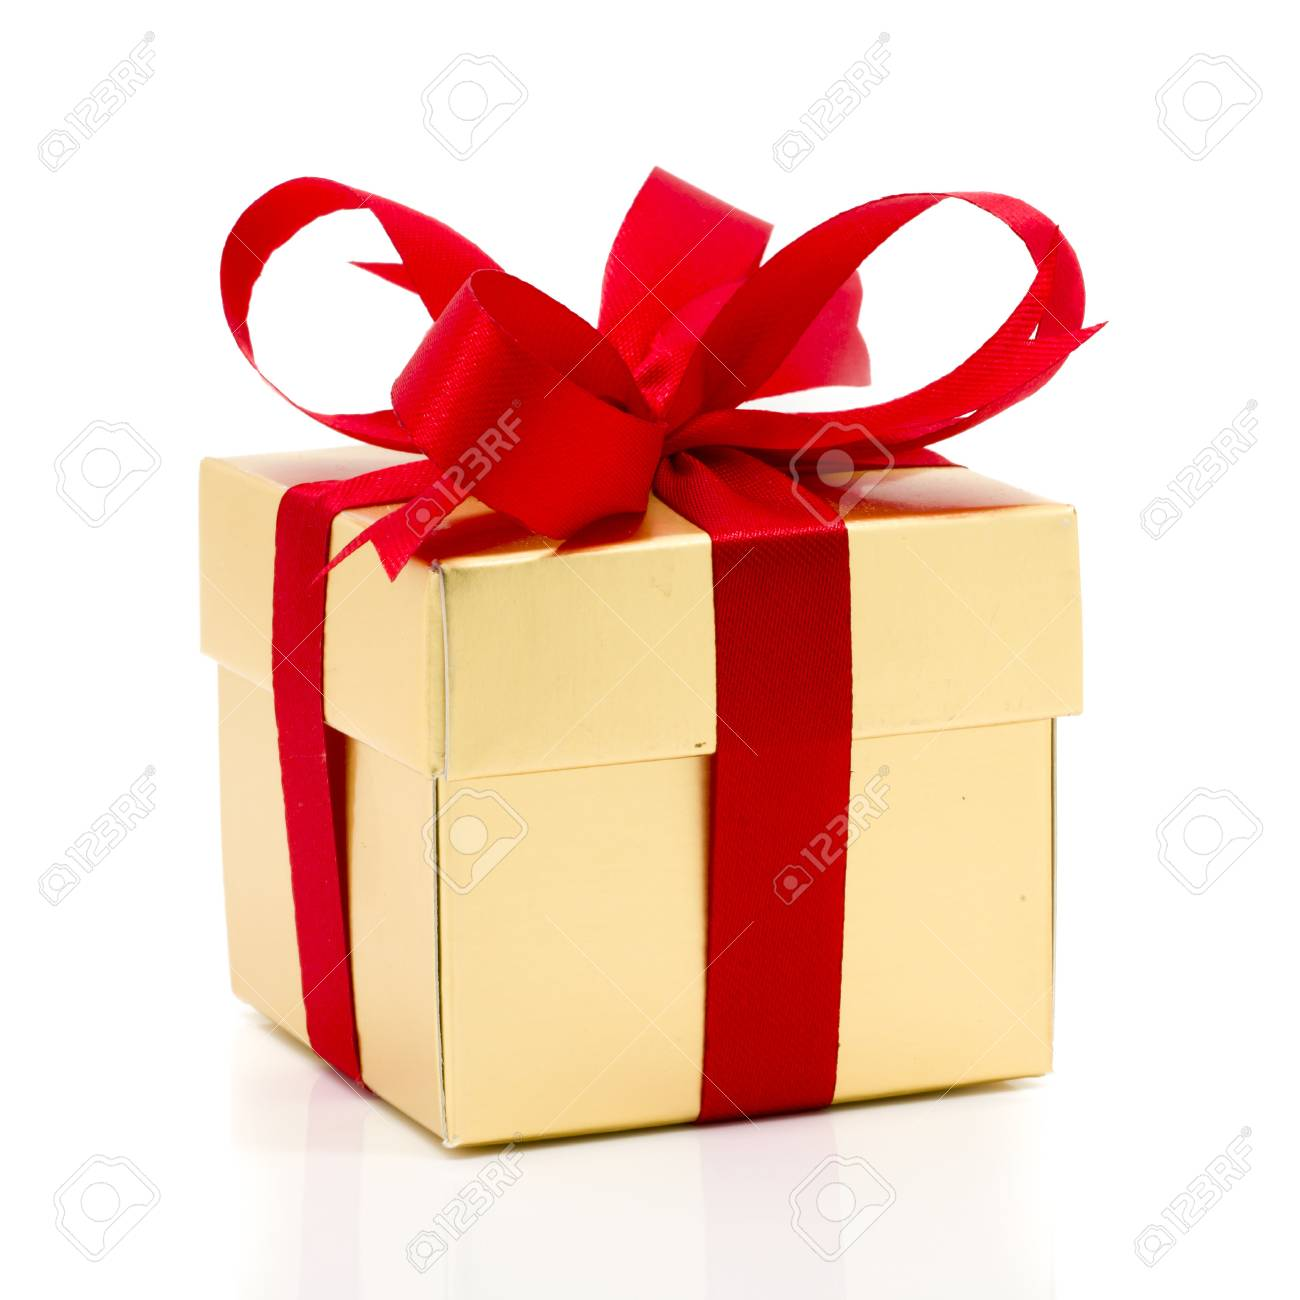 Beautiful Gold Present Box With Red Bow And Ribbons On White